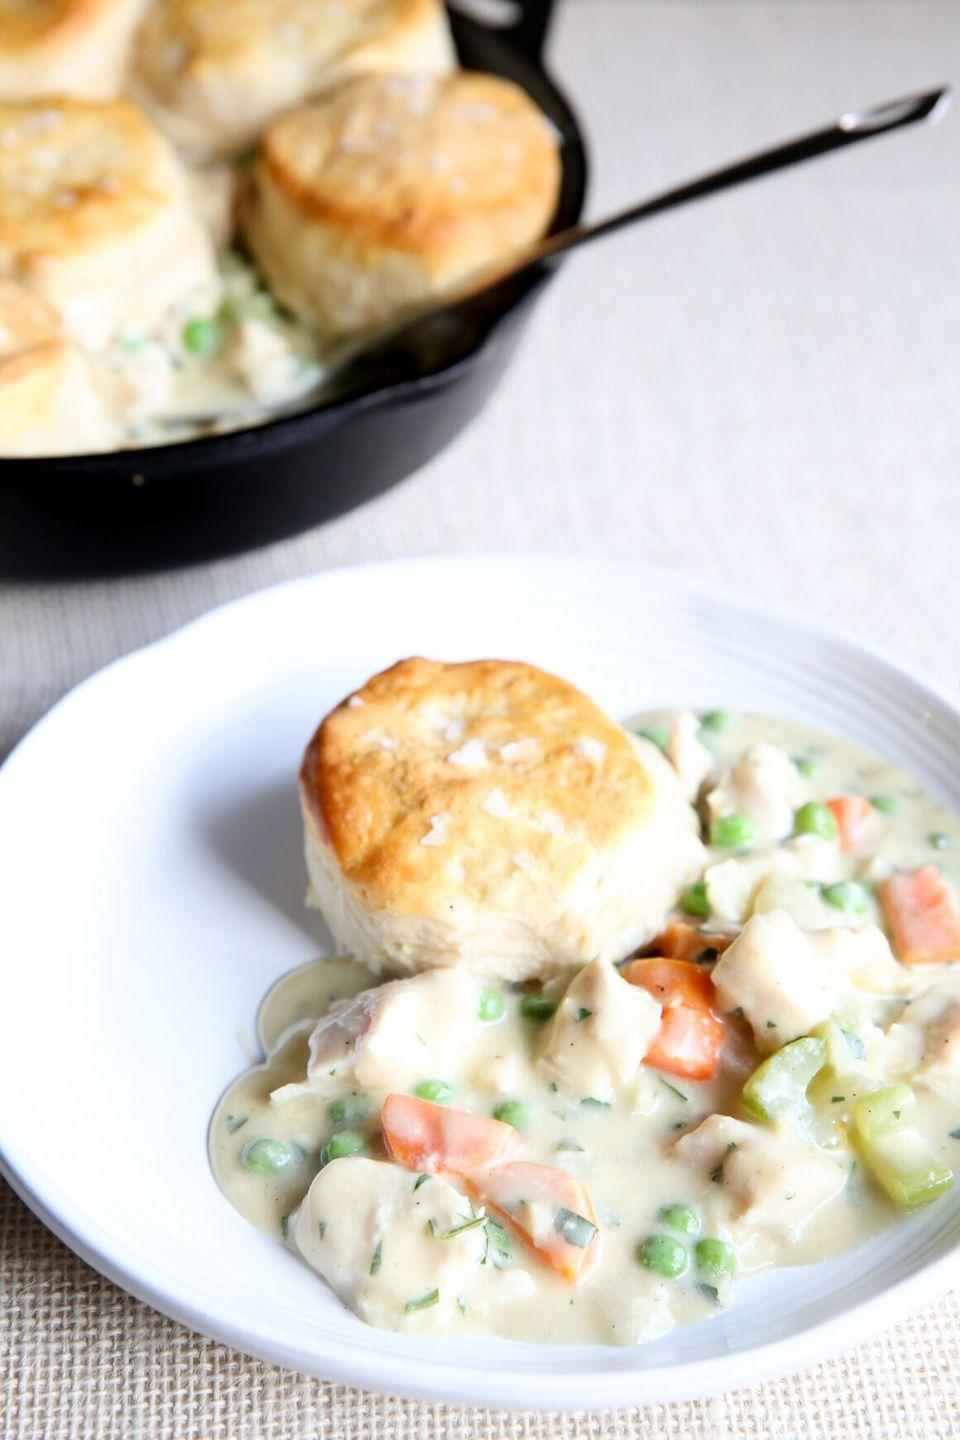 """<p>Biscuits>puff pastry.</p><p>Get the recipe from <a href=""""https://www.delish.com/cooking/recipe-ideas/recipes/a50857/skillet-biscuit-pot-pie-recipe/"""" rel=""""nofollow noopener"""" target=""""_blank"""" data-ylk=""""slk:Delish"""" class=""""link rapid-noclick-resp"""">Delish</a>.</p>"""